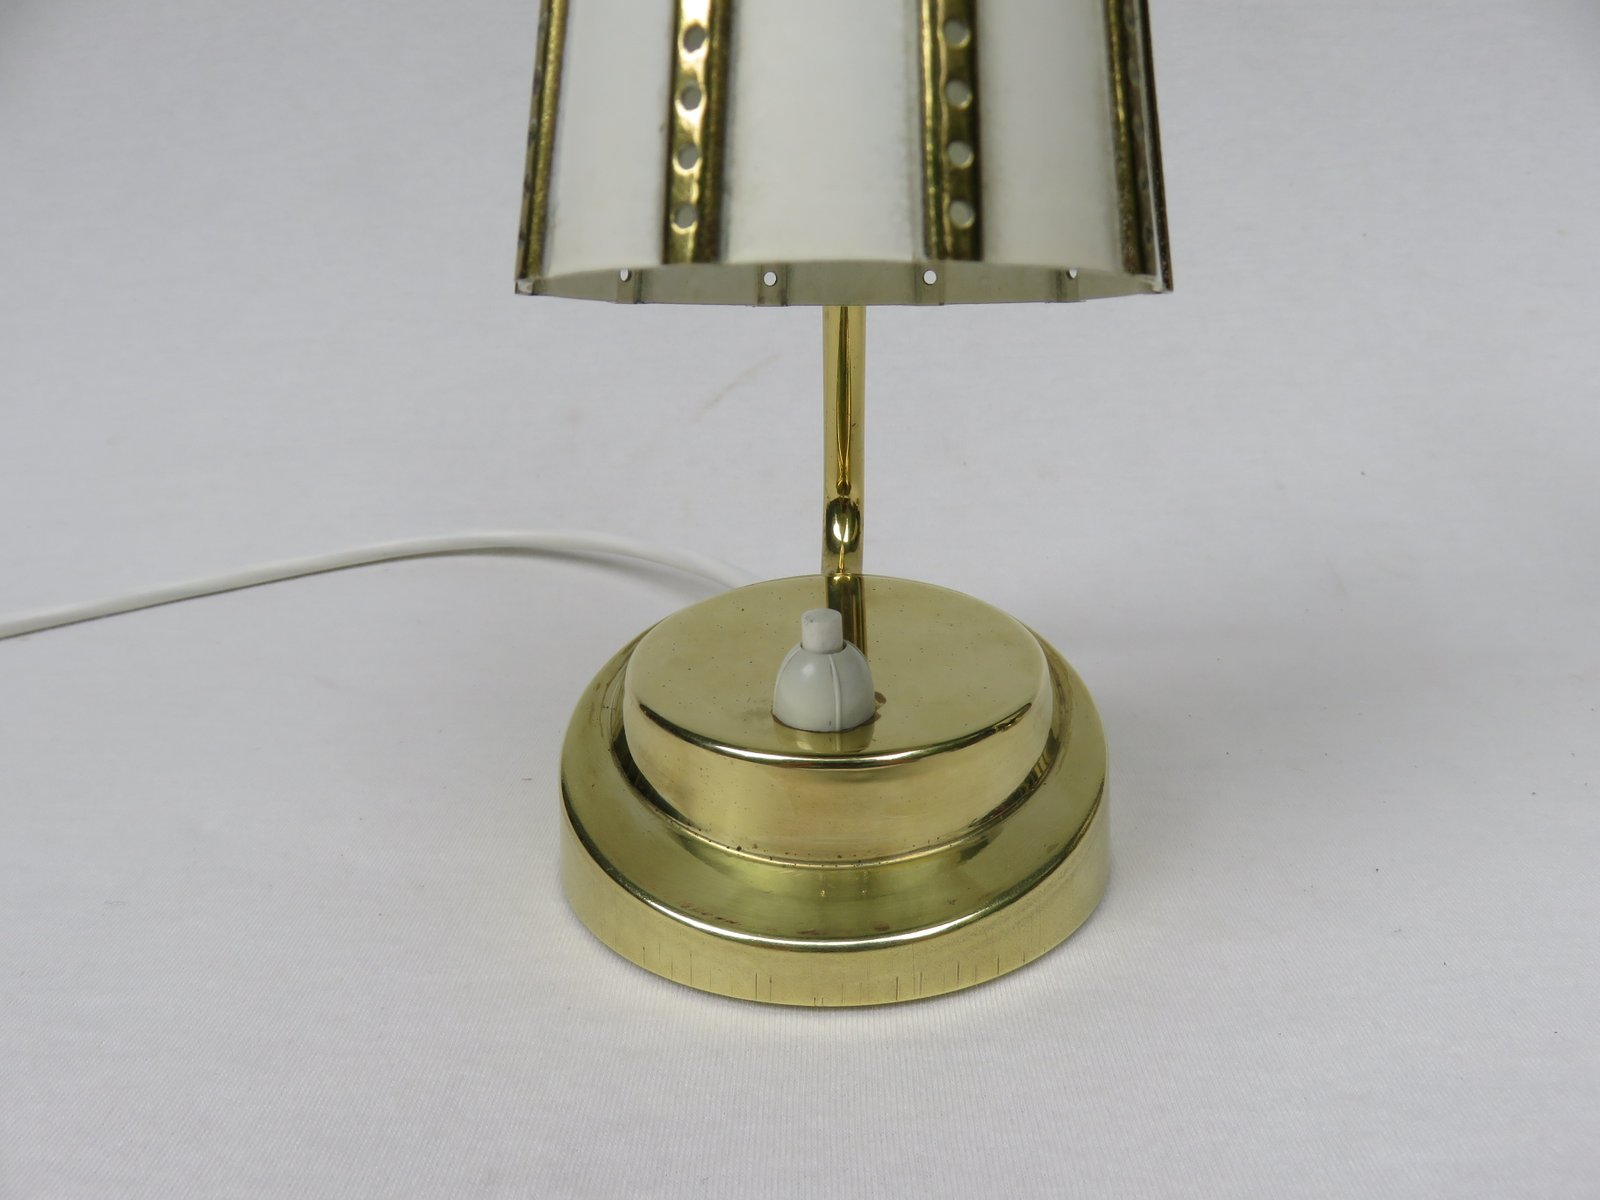 Brass Touch Lamps Bedside Italian Brass Bedside Lamps 1950s Set Of 2 For Sale At